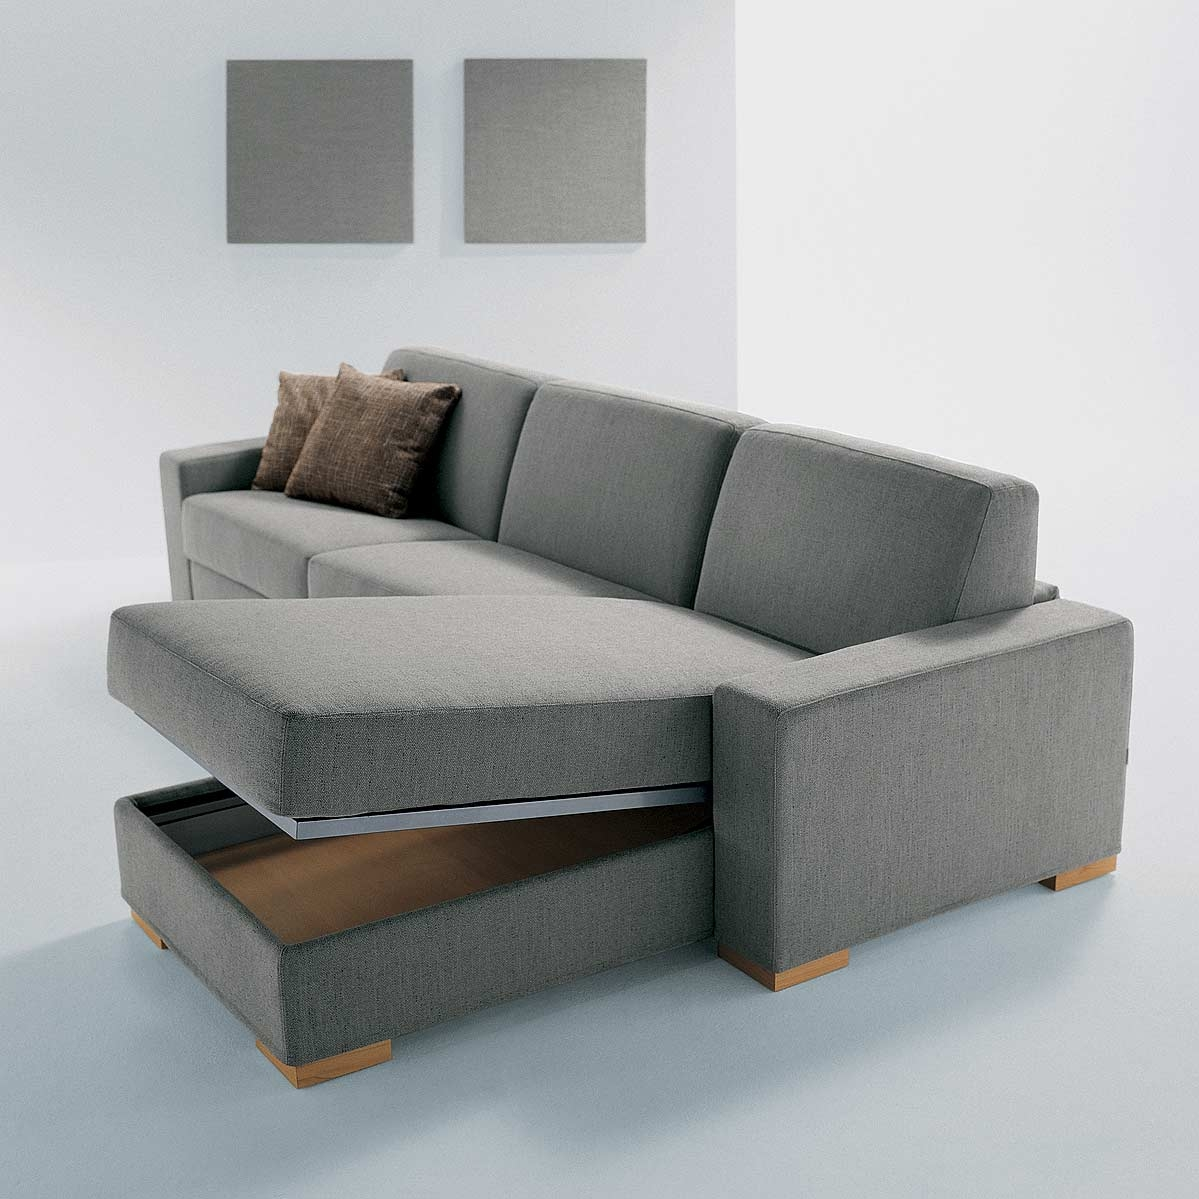 Sofas Center Awful L Shaped Sofa Pictures Design Ikea Rv With In L Shaped Sofa Bed (Image 15 of 15)